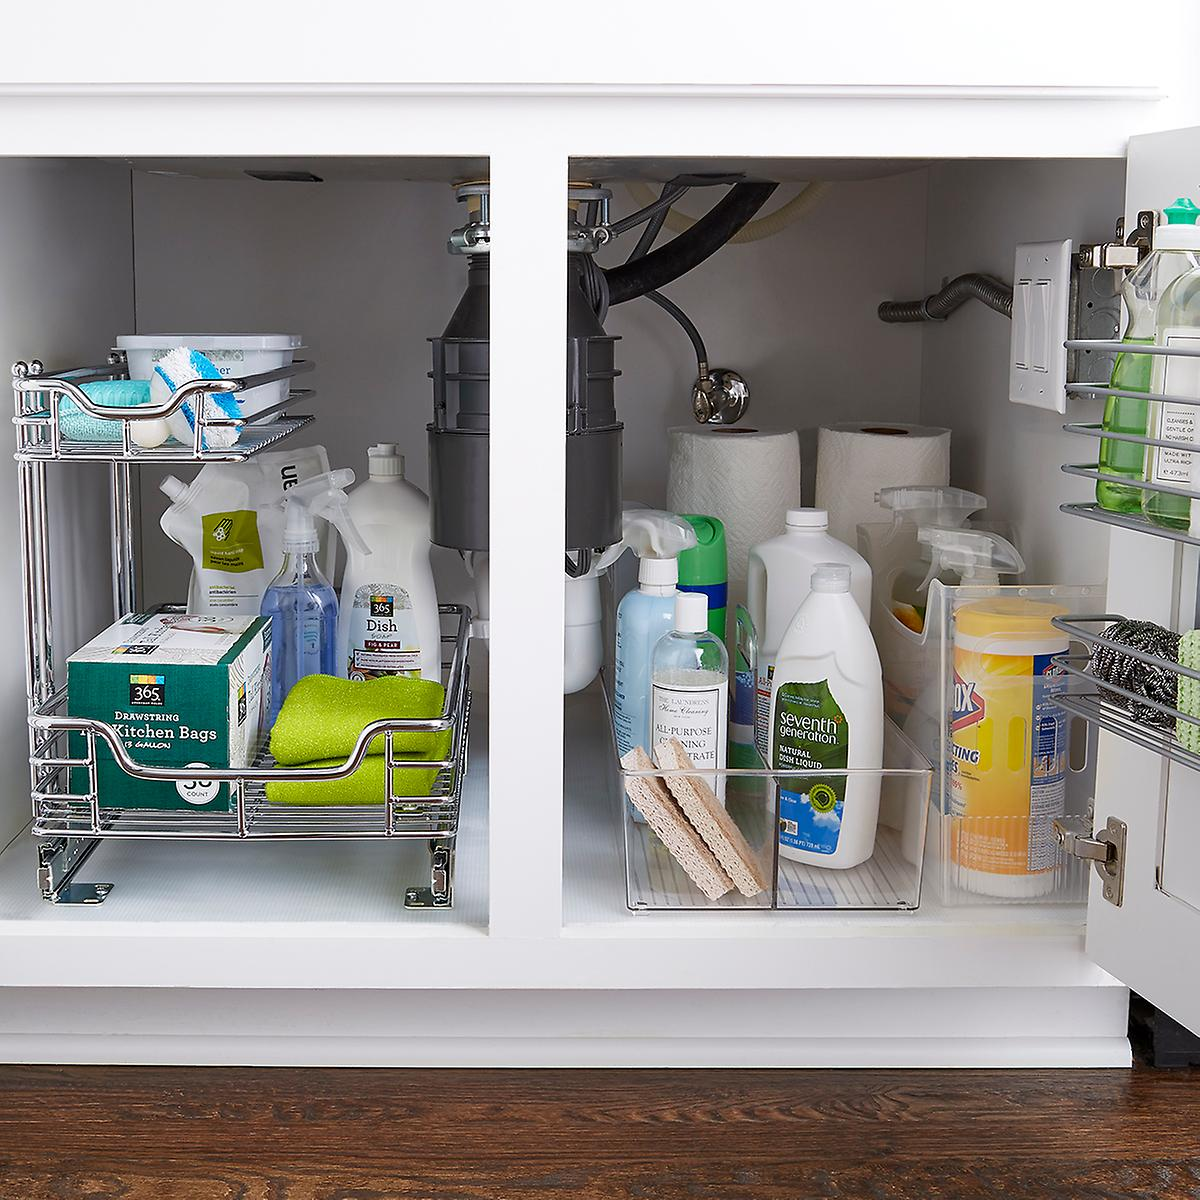 Kitchen Storage And Organization: Chrome 2-Tier Sliding Organizer